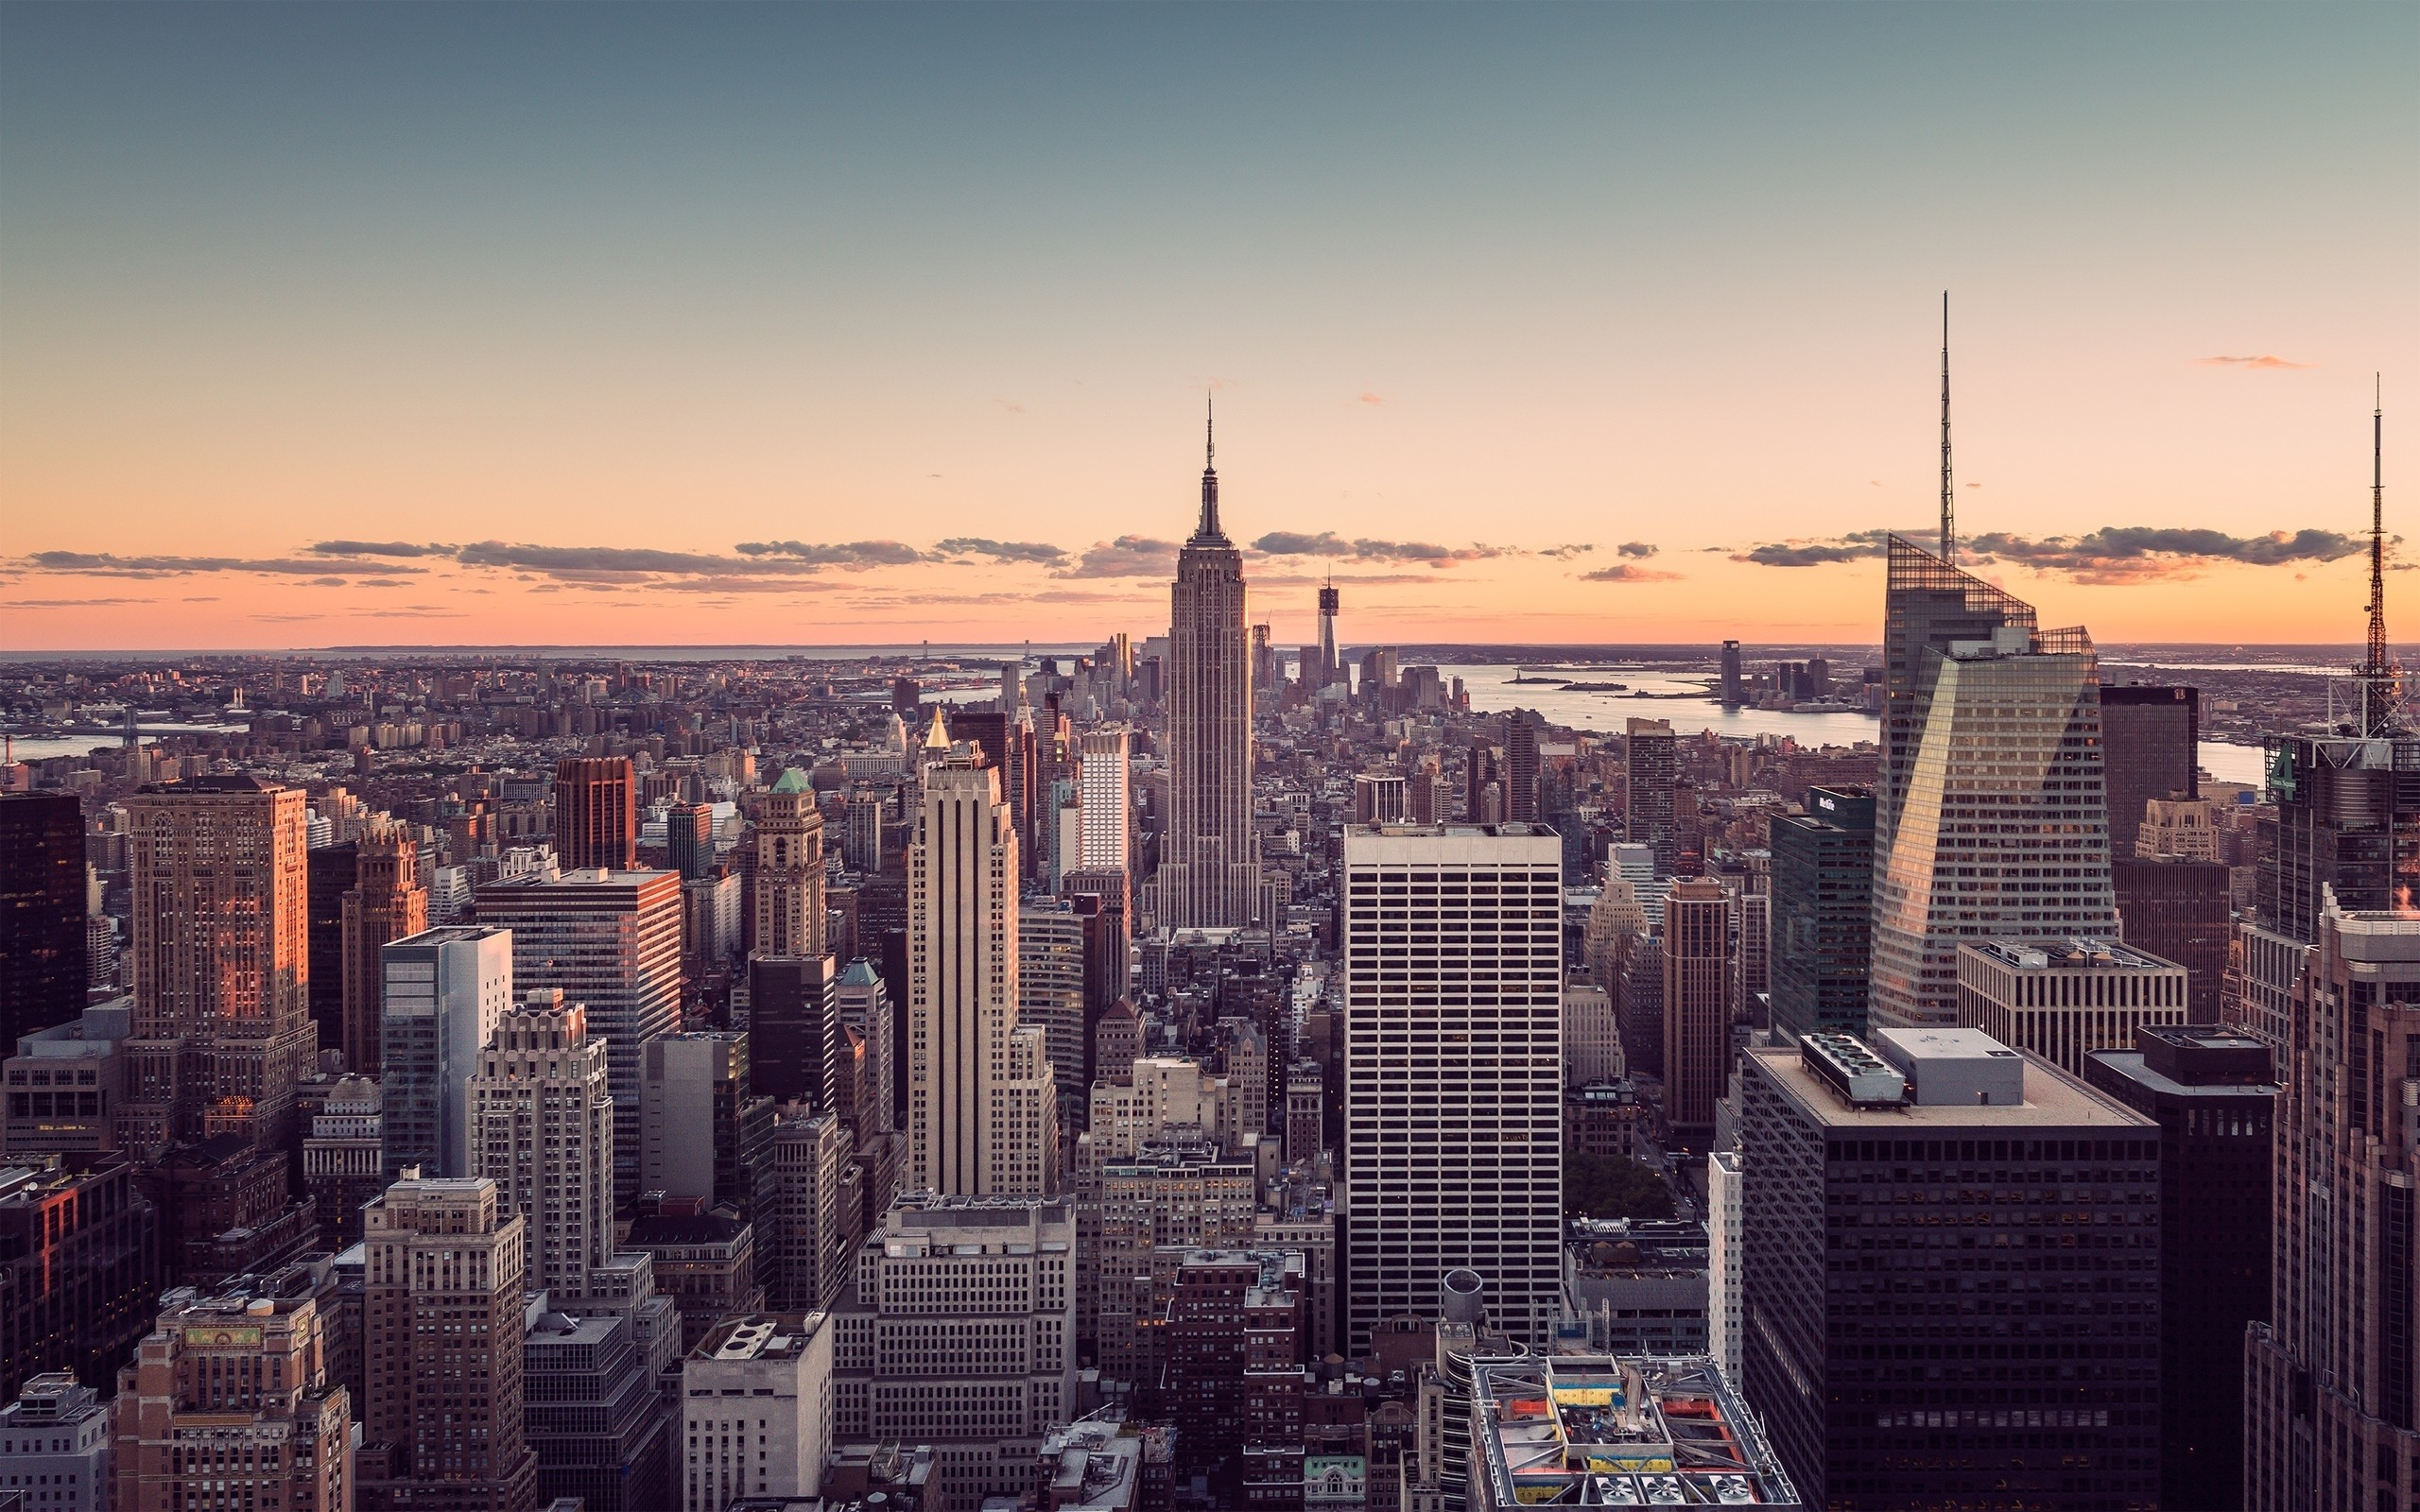 Download New York Wallpaper For Phone Gallery | Free Wallpapers | Pinterest  | Wallpaper and Hd wallpaper